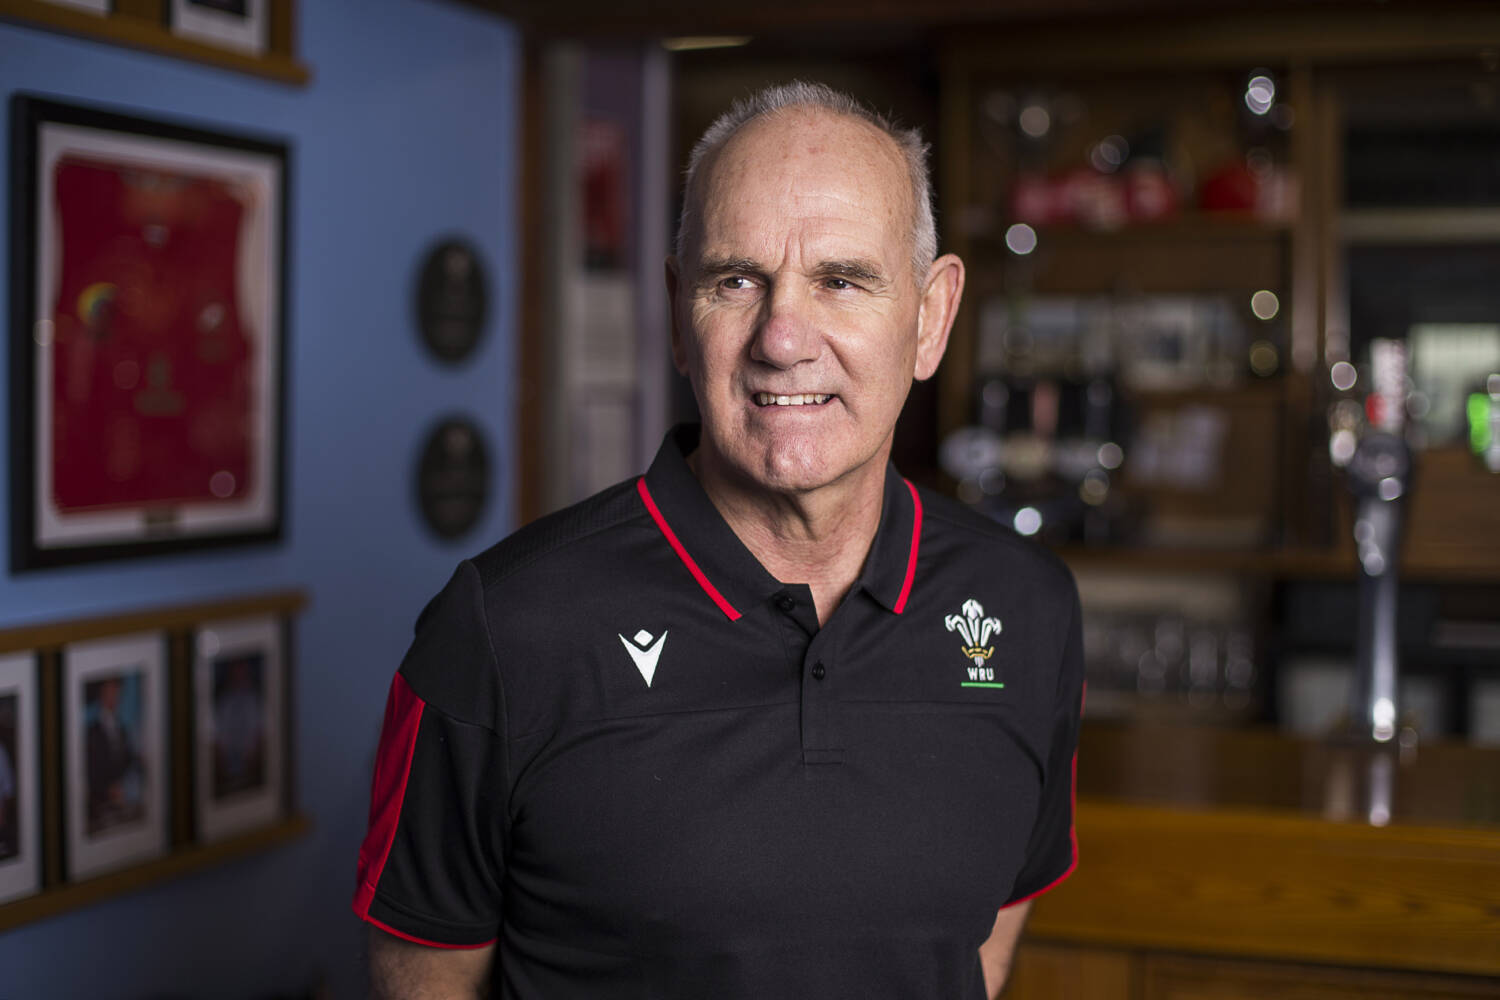 WRU Status Update: Hear from new chair Rob Butcher and much more…